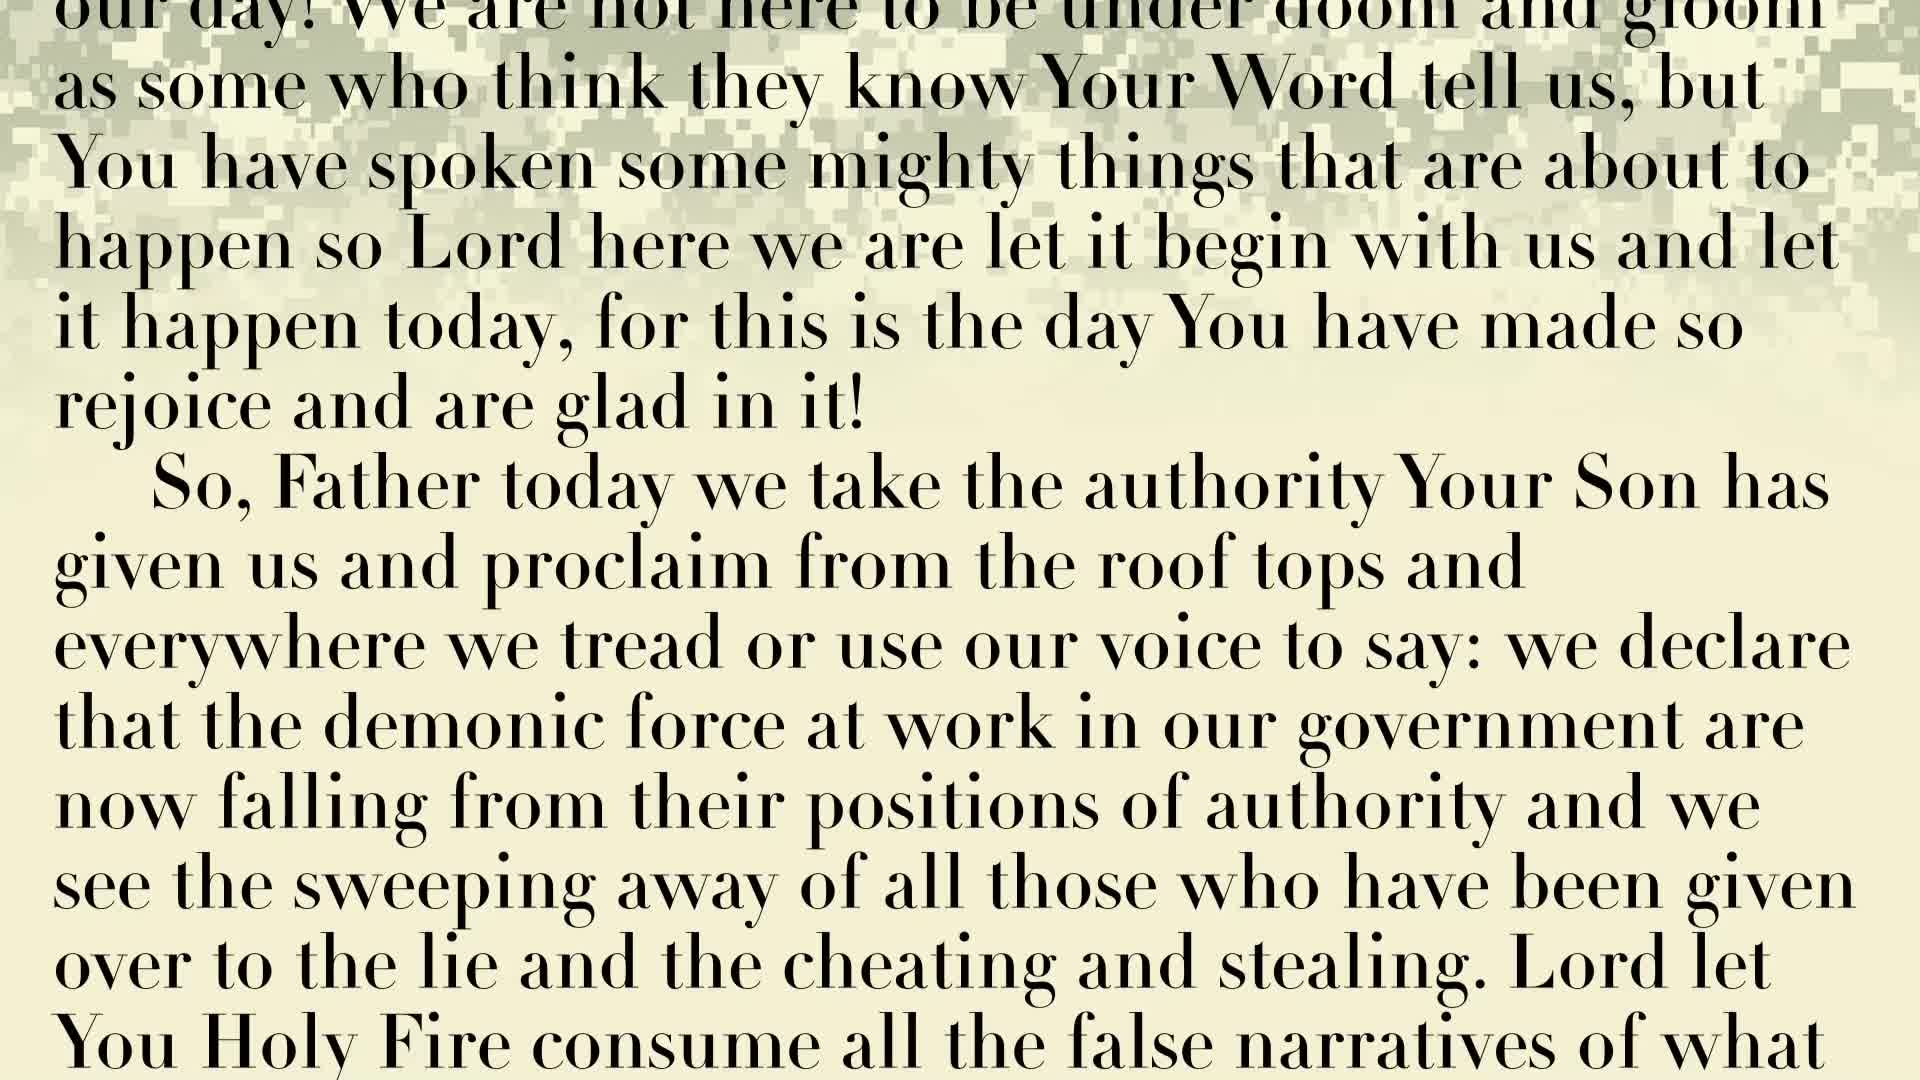 PRAYER FOCUS: GOD SPEAKS TO US THROUGH THE PRIESTLY PRAYER JUST AS HE DID TO HIS SON! SAY THOSE WORDS OVER YOURSELF!